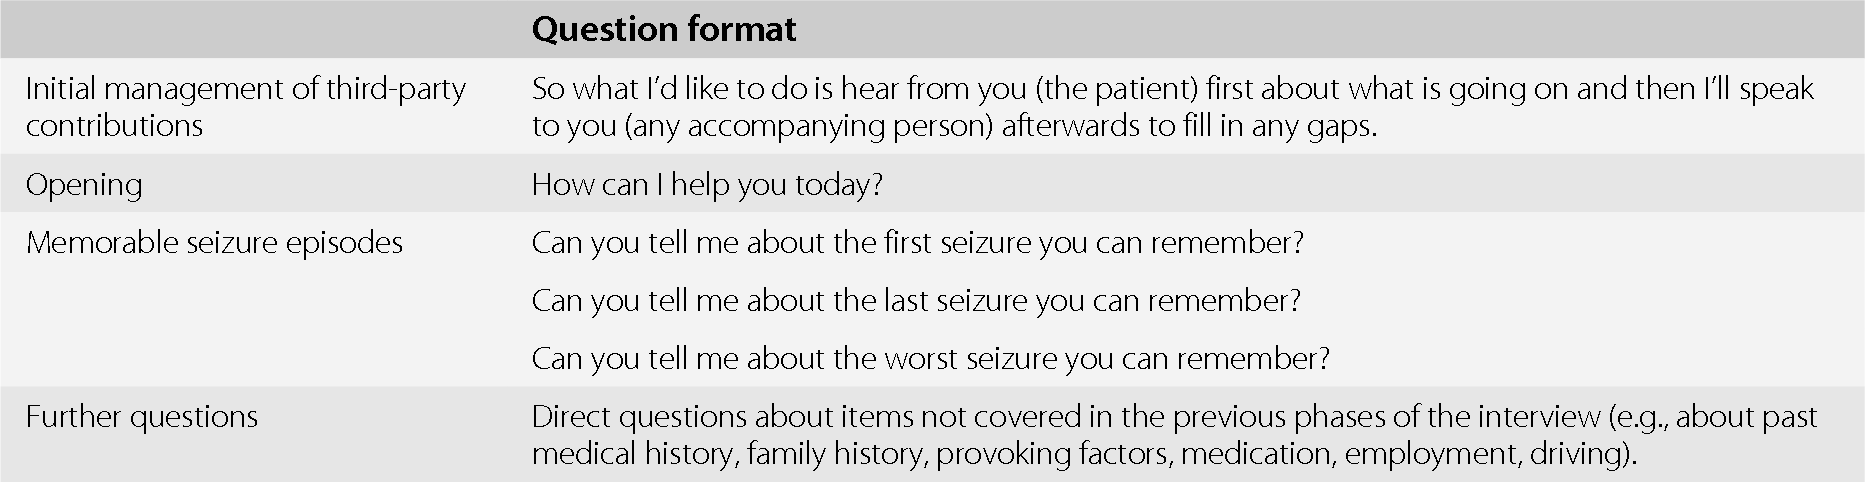 Recognition, Diagnosis, and Impact of Nonepileptic Seizures